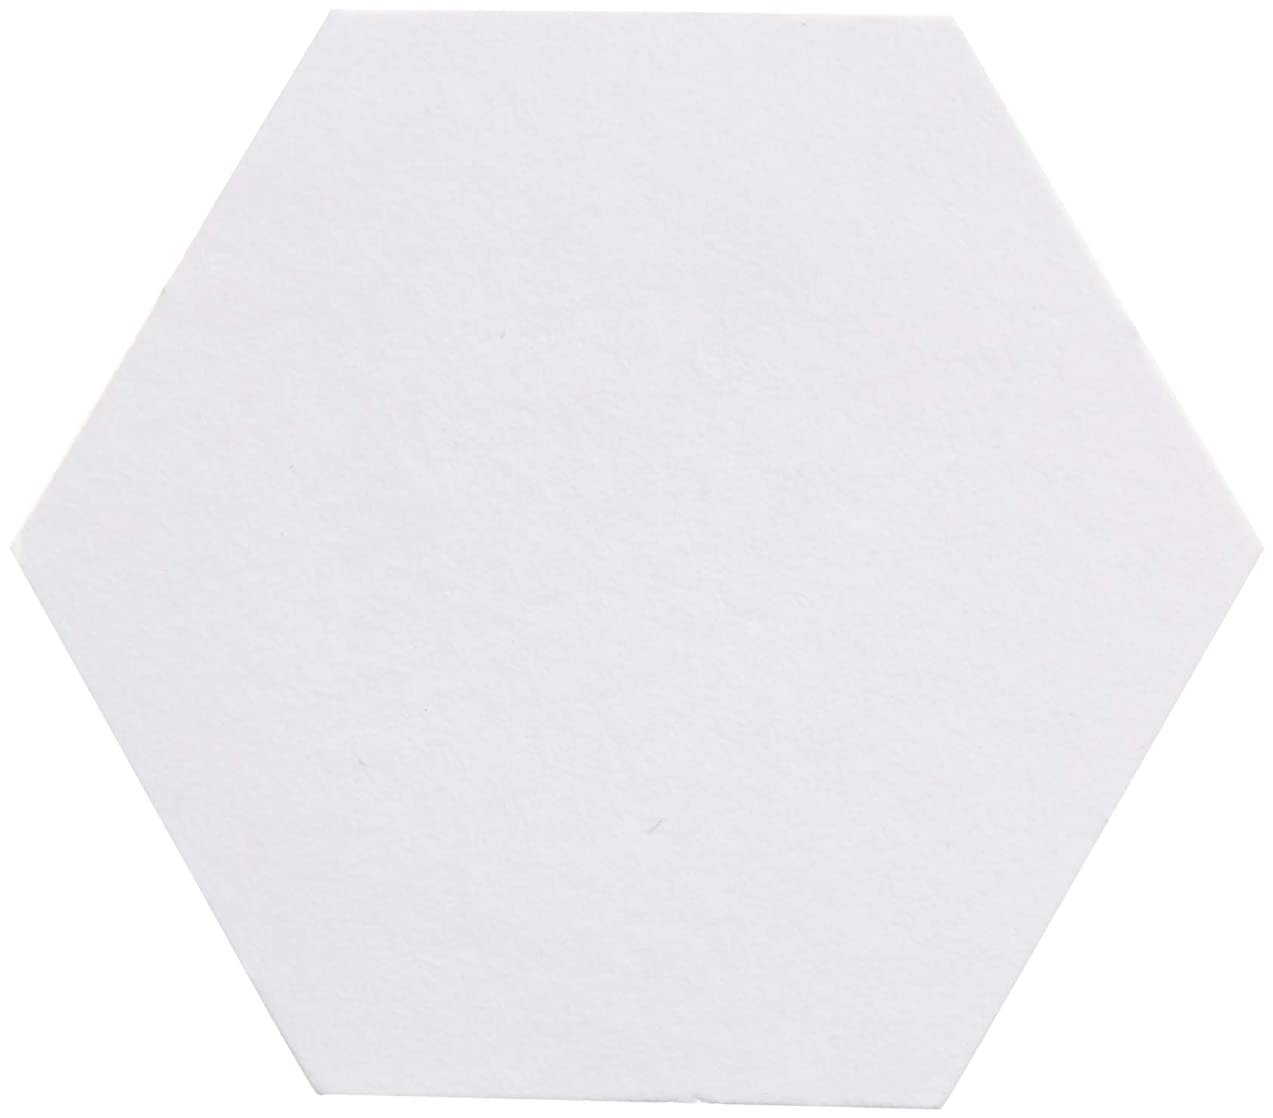 Paper Pieces HEX075B Hexagon Pack 3/4In 1500Pc defkhzjg678